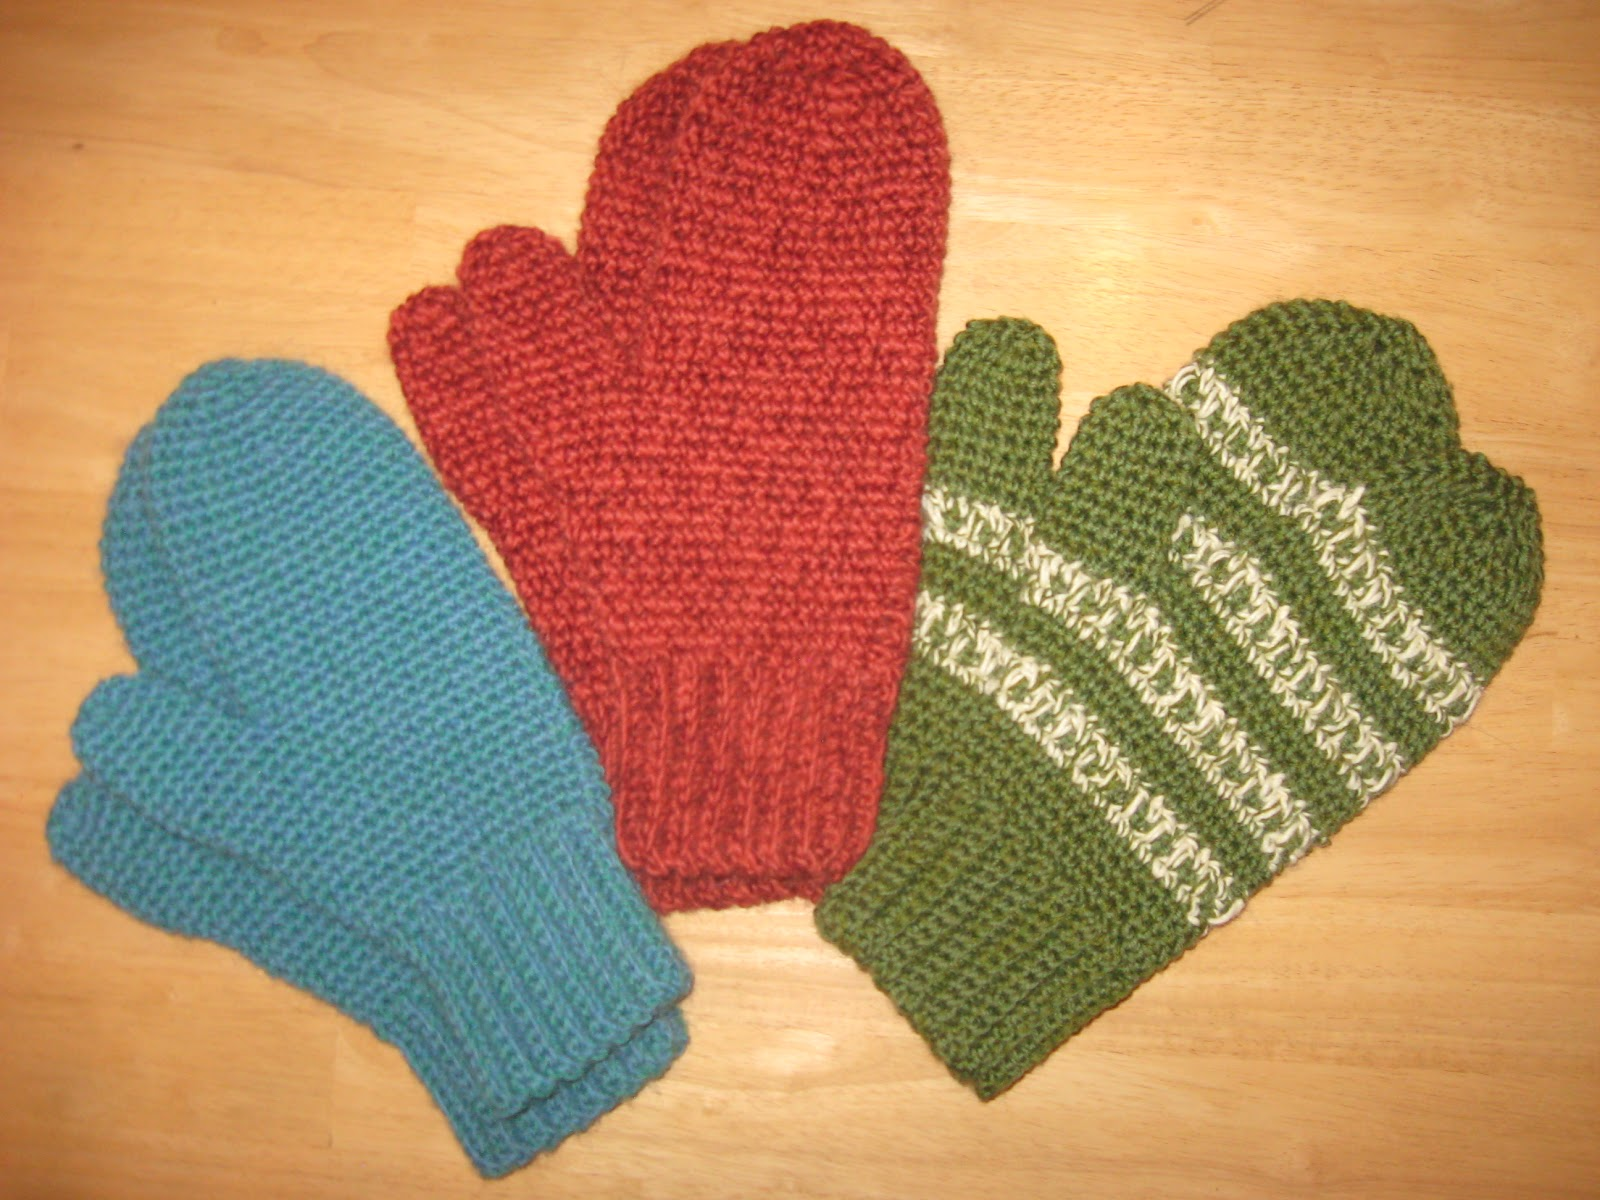 Crochet Mittens More crocheted mittens heading